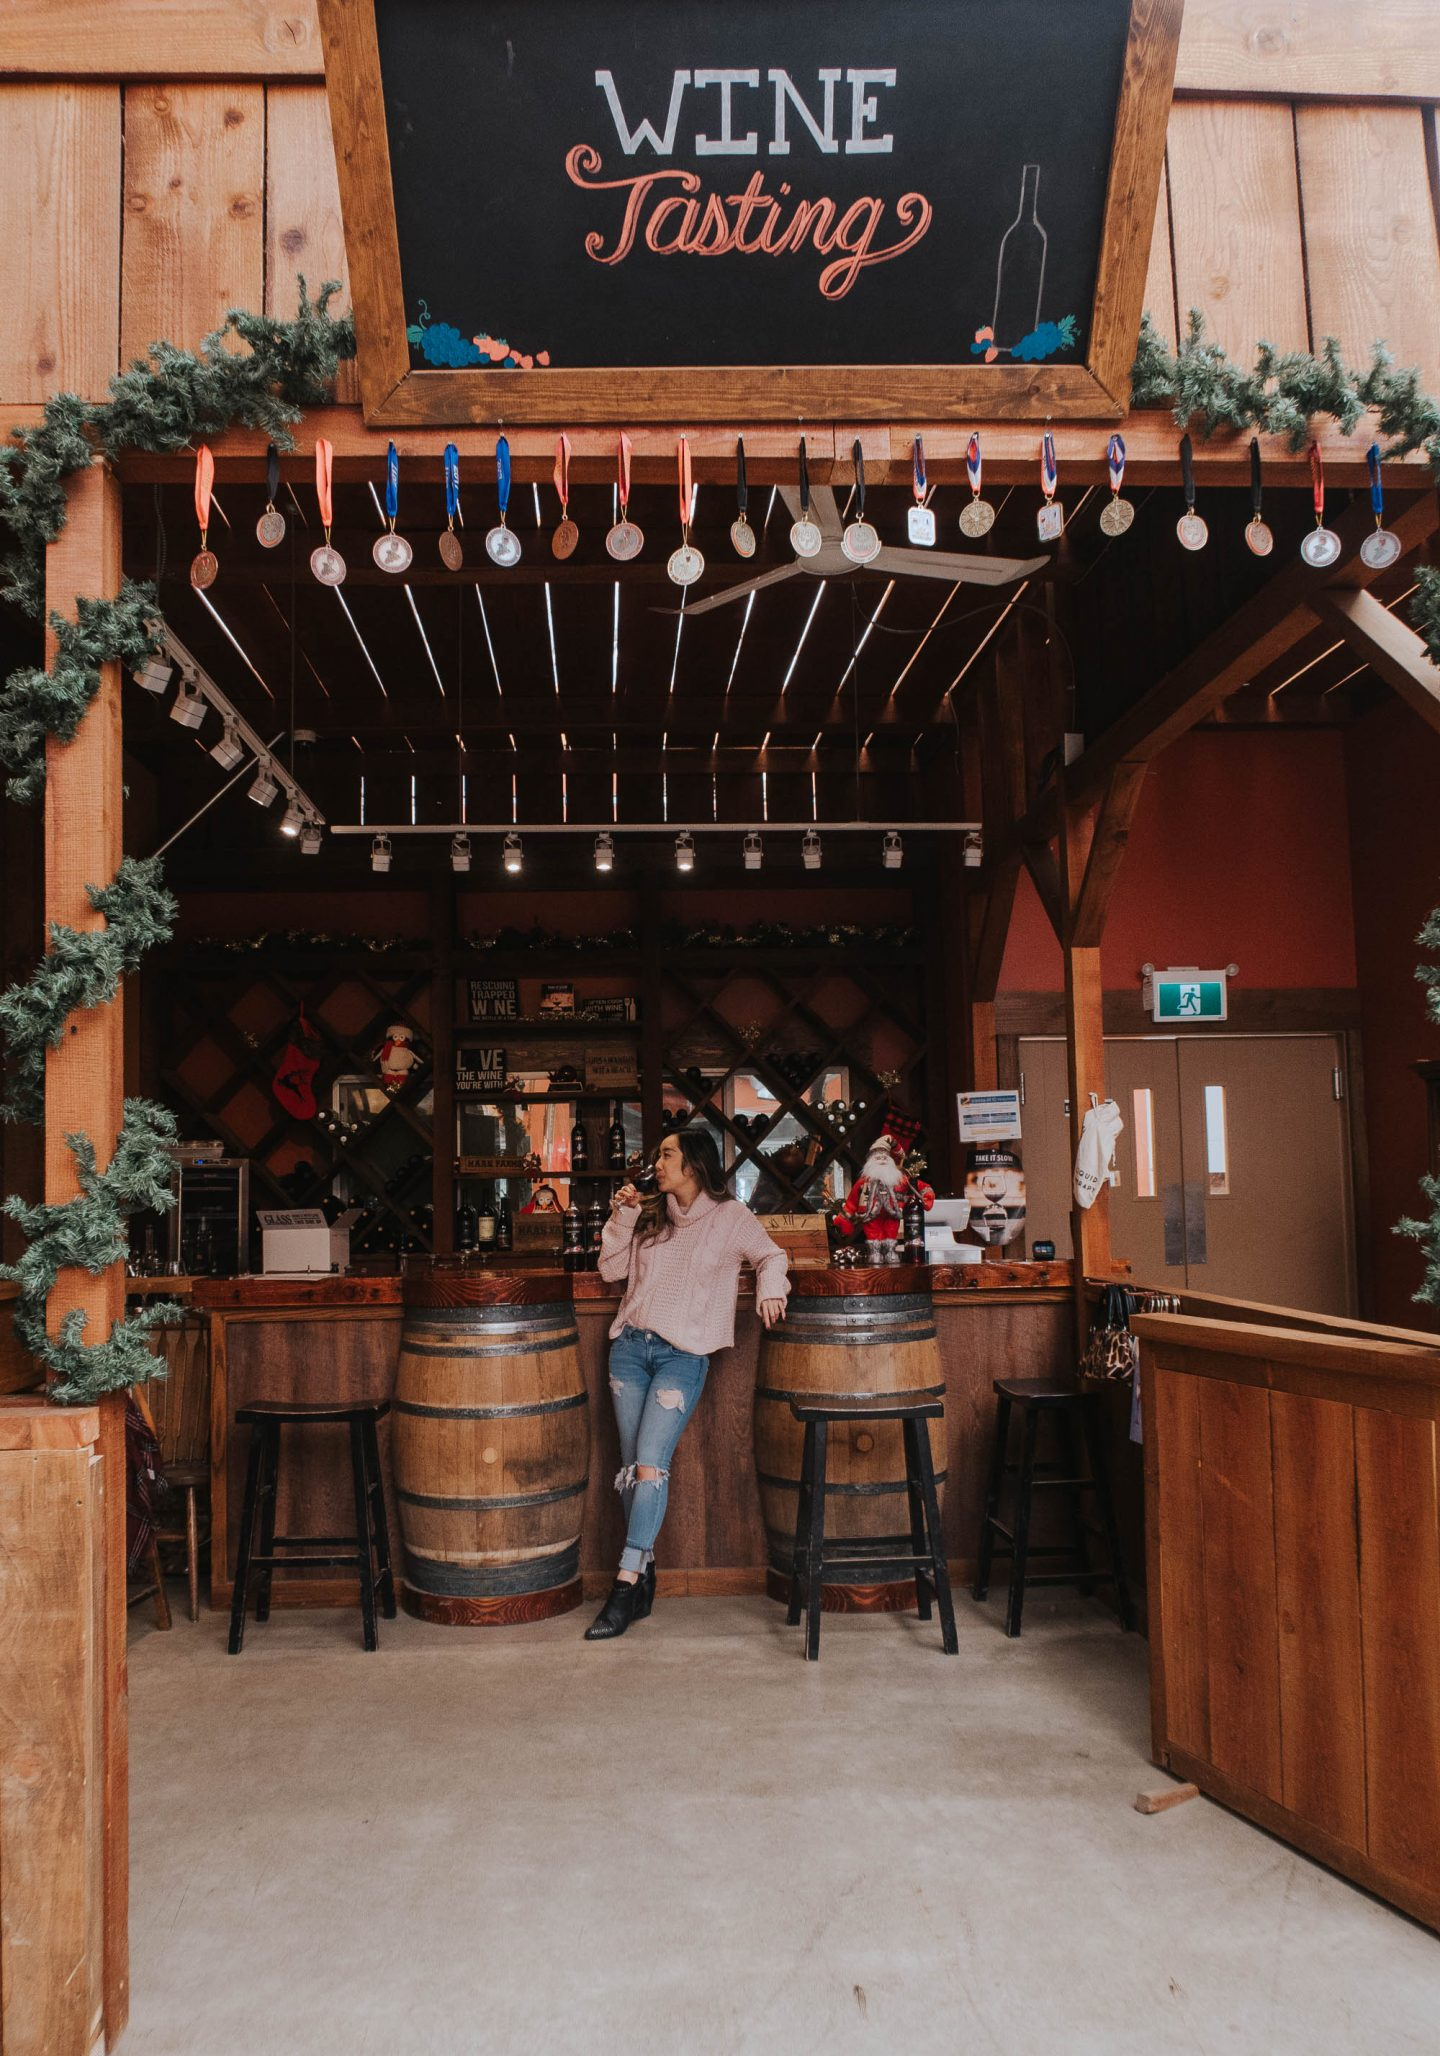 Explore and taste local wines in Abbotsford